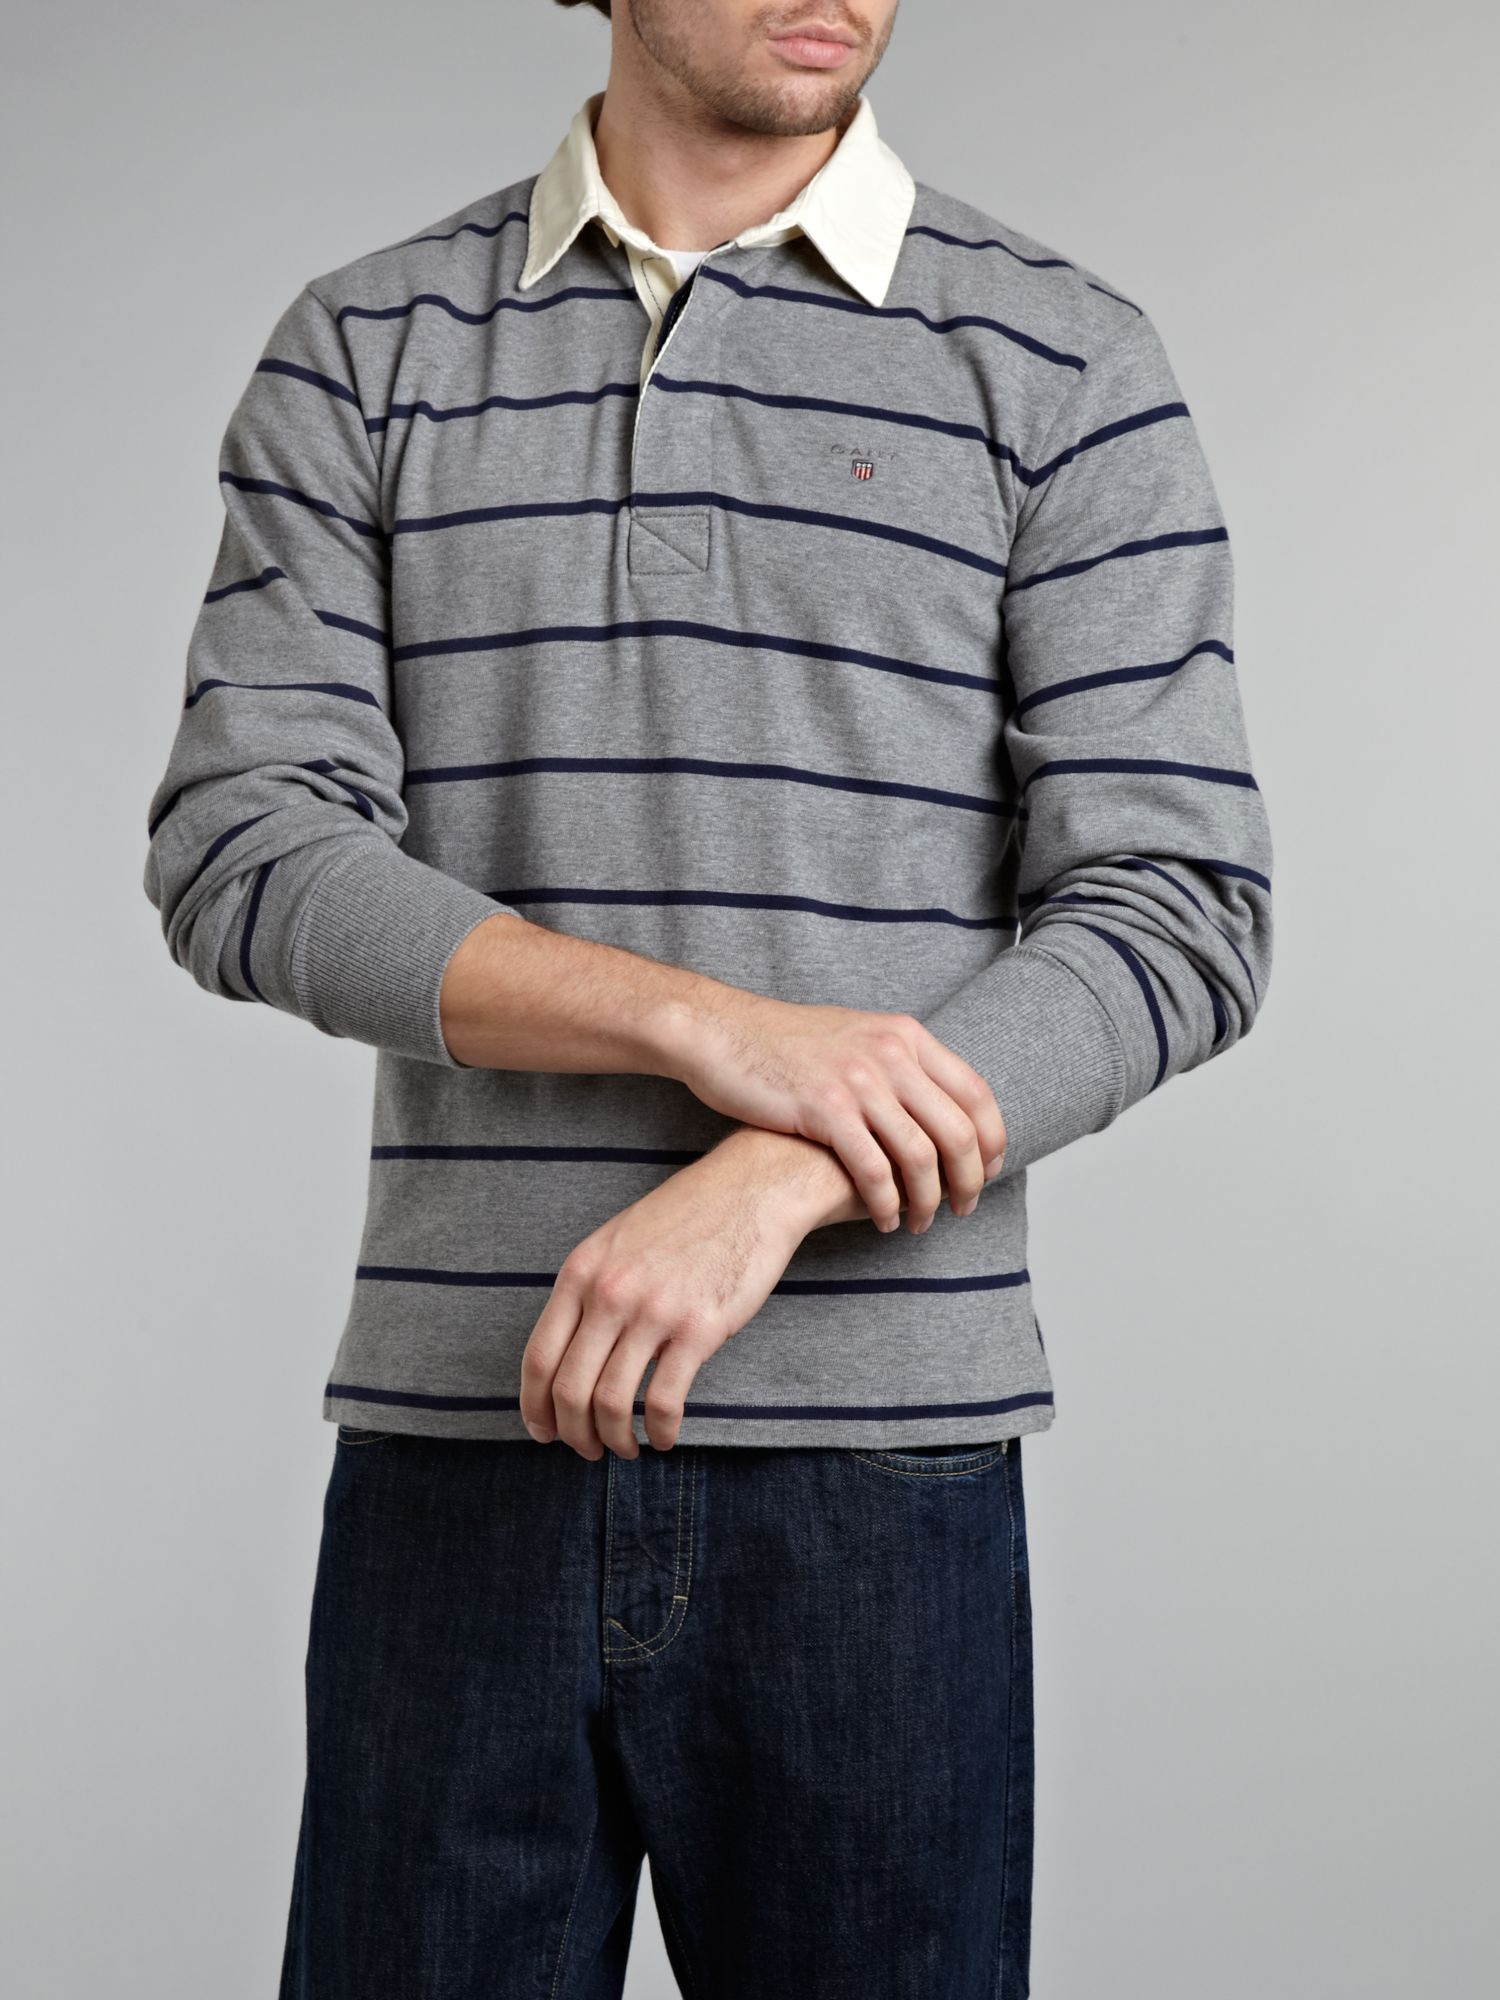 Regular fit breton stripe rugby shirt